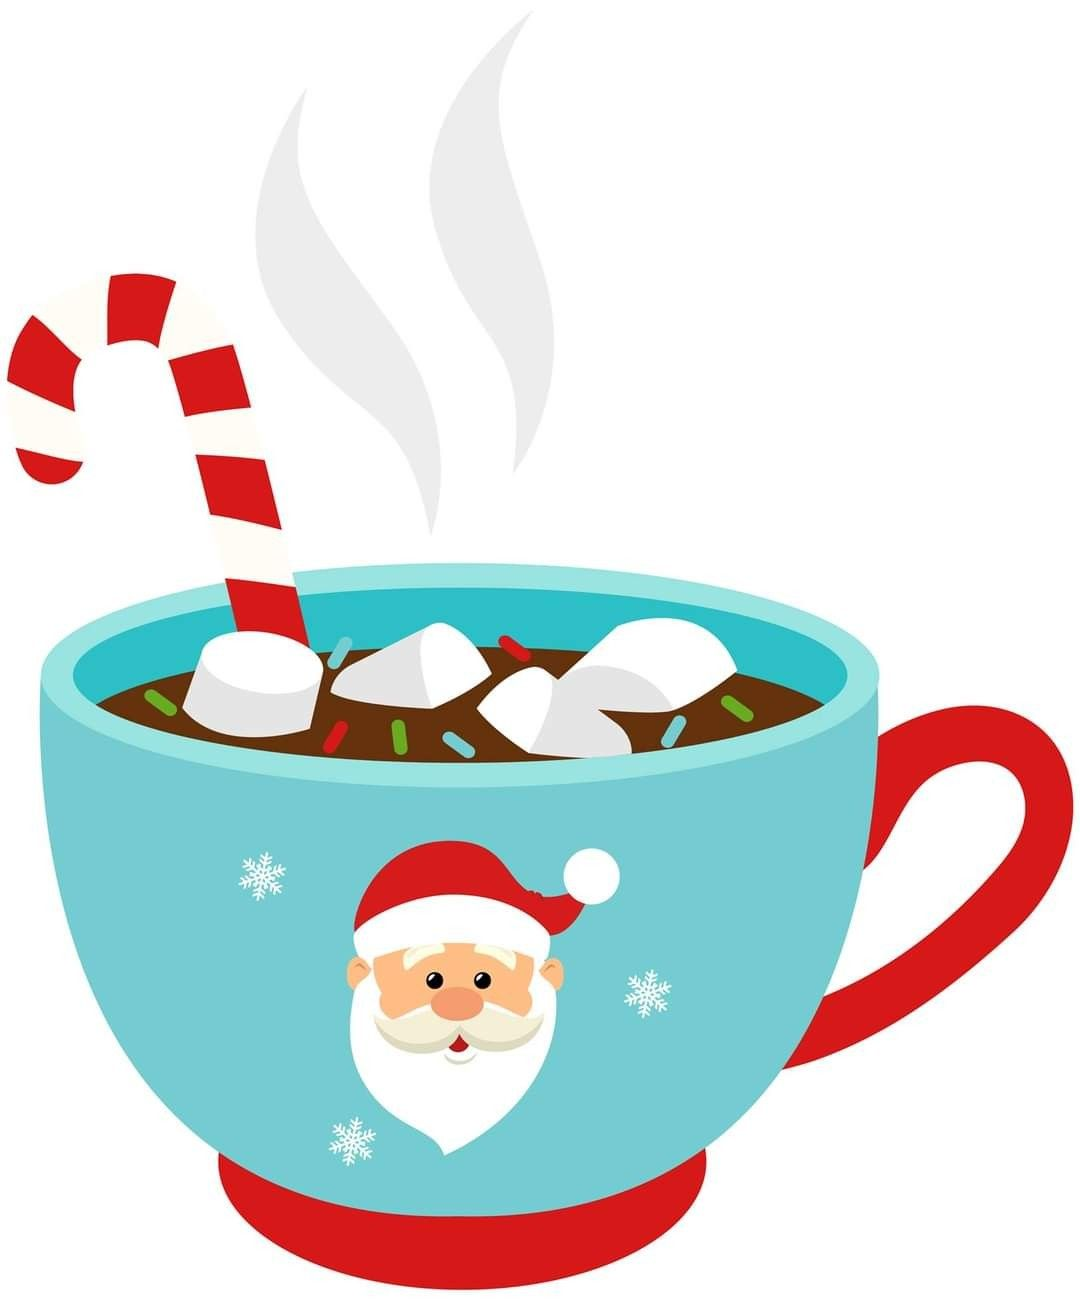 Santa Claus Candy Cane Peppermint Hot Cocoa With Marshmallows Png Svg Peppermint Hot Cocoa Etsy Gift Card Handmade Gifts